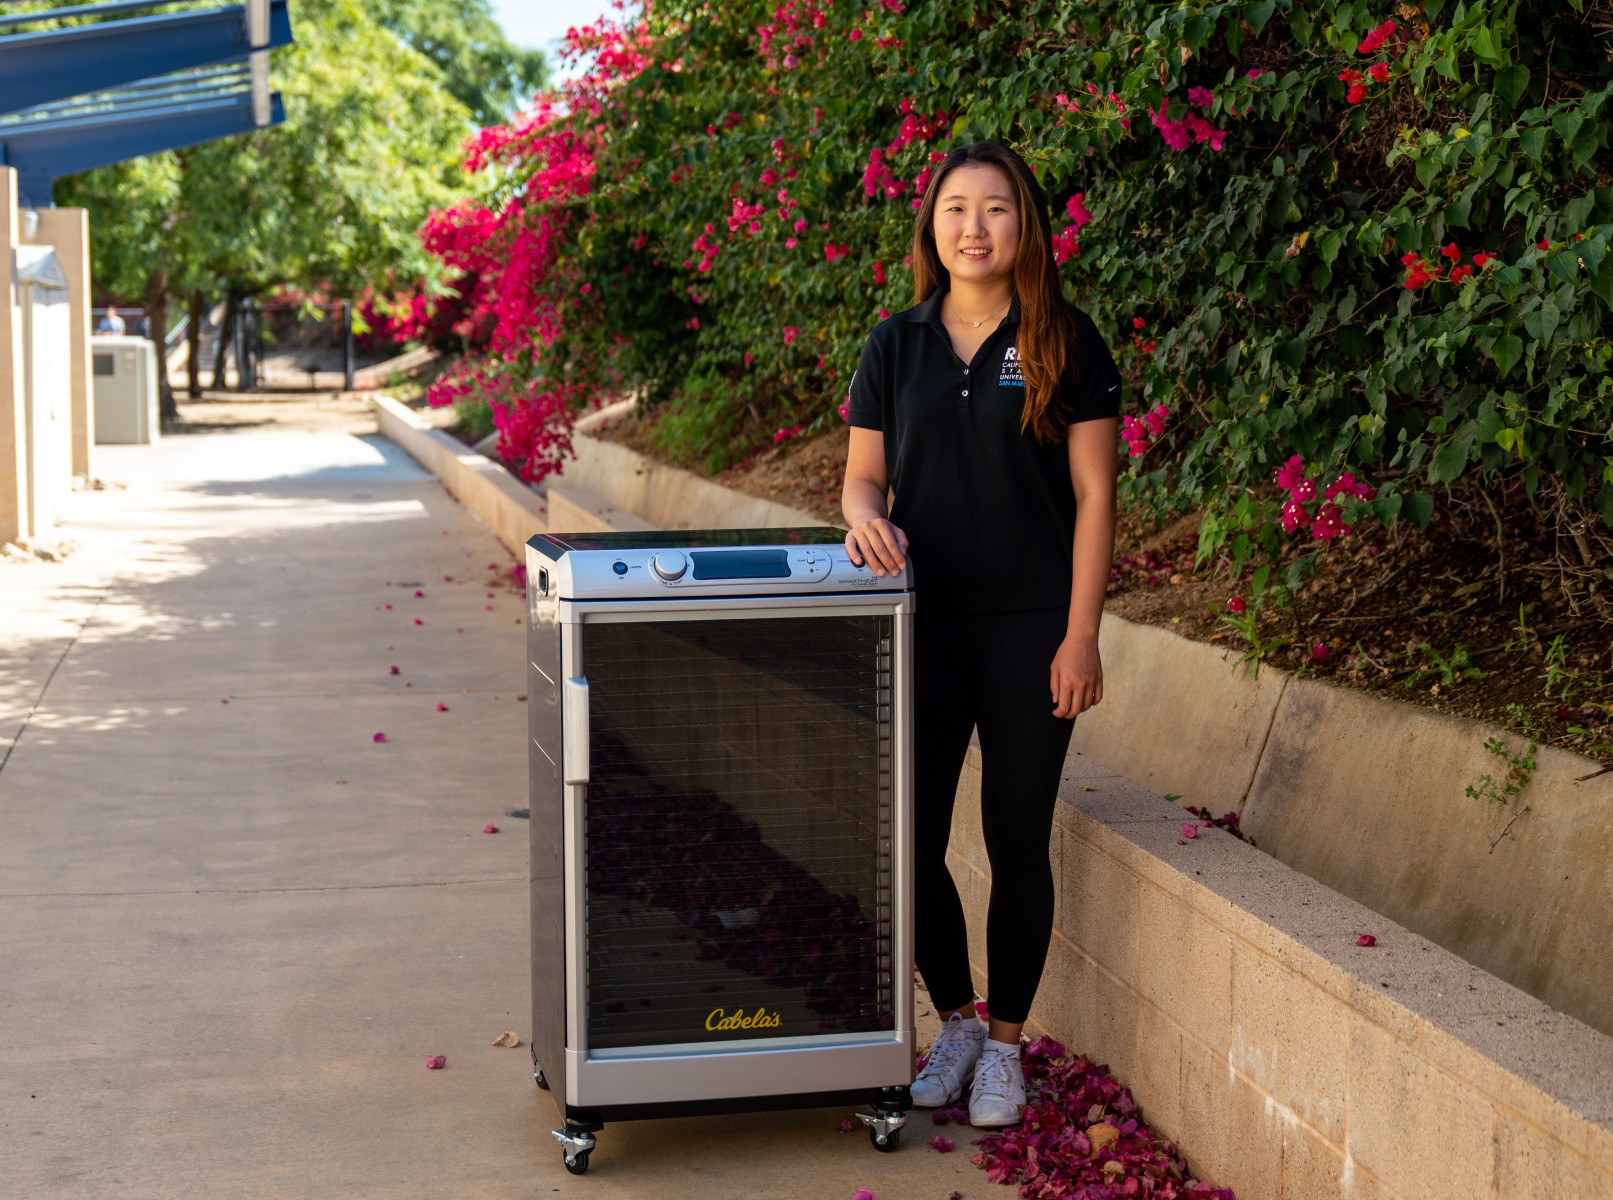 A dehydrator was among the items purchased by Outdoor Adventures thanks to a sustainability grant that Michelle Kang received. Photo by Chandler Oriente